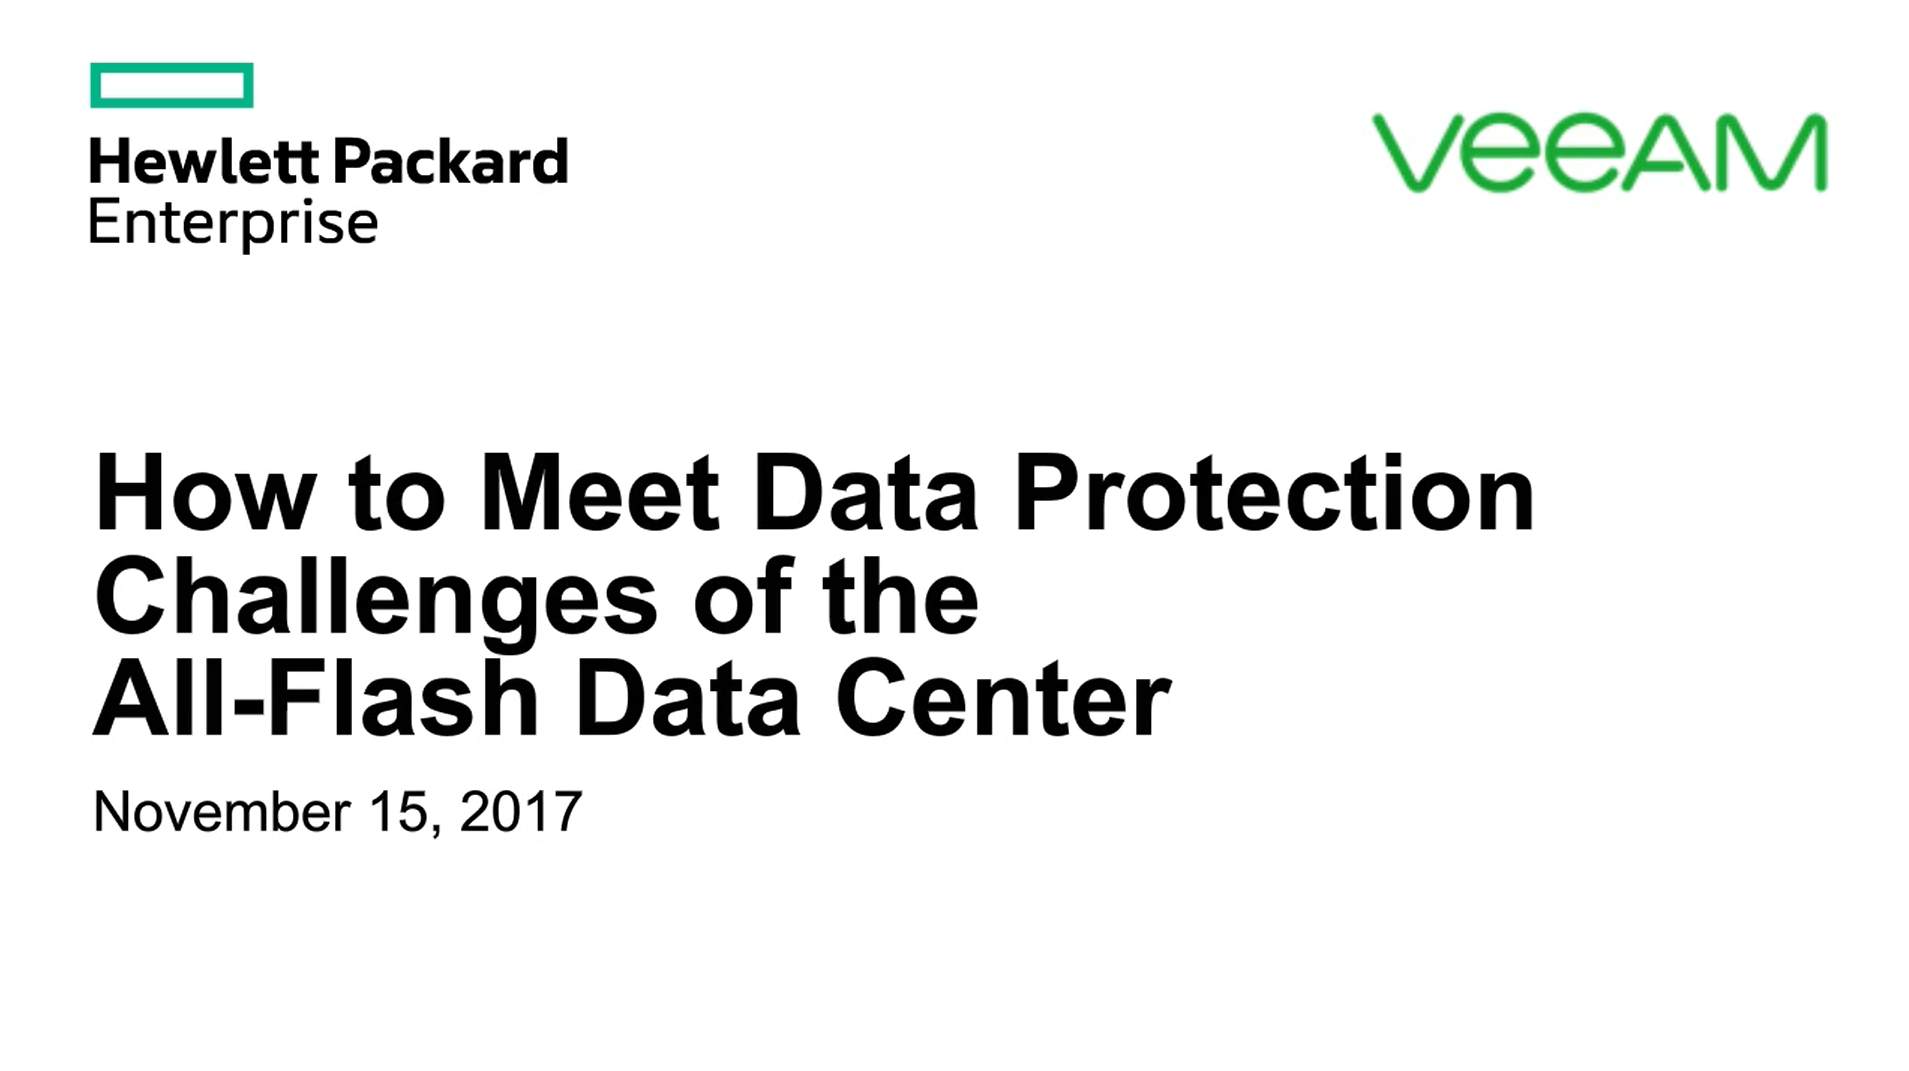 How to Meet Data Protection Challenges of the All-Flash Data Center